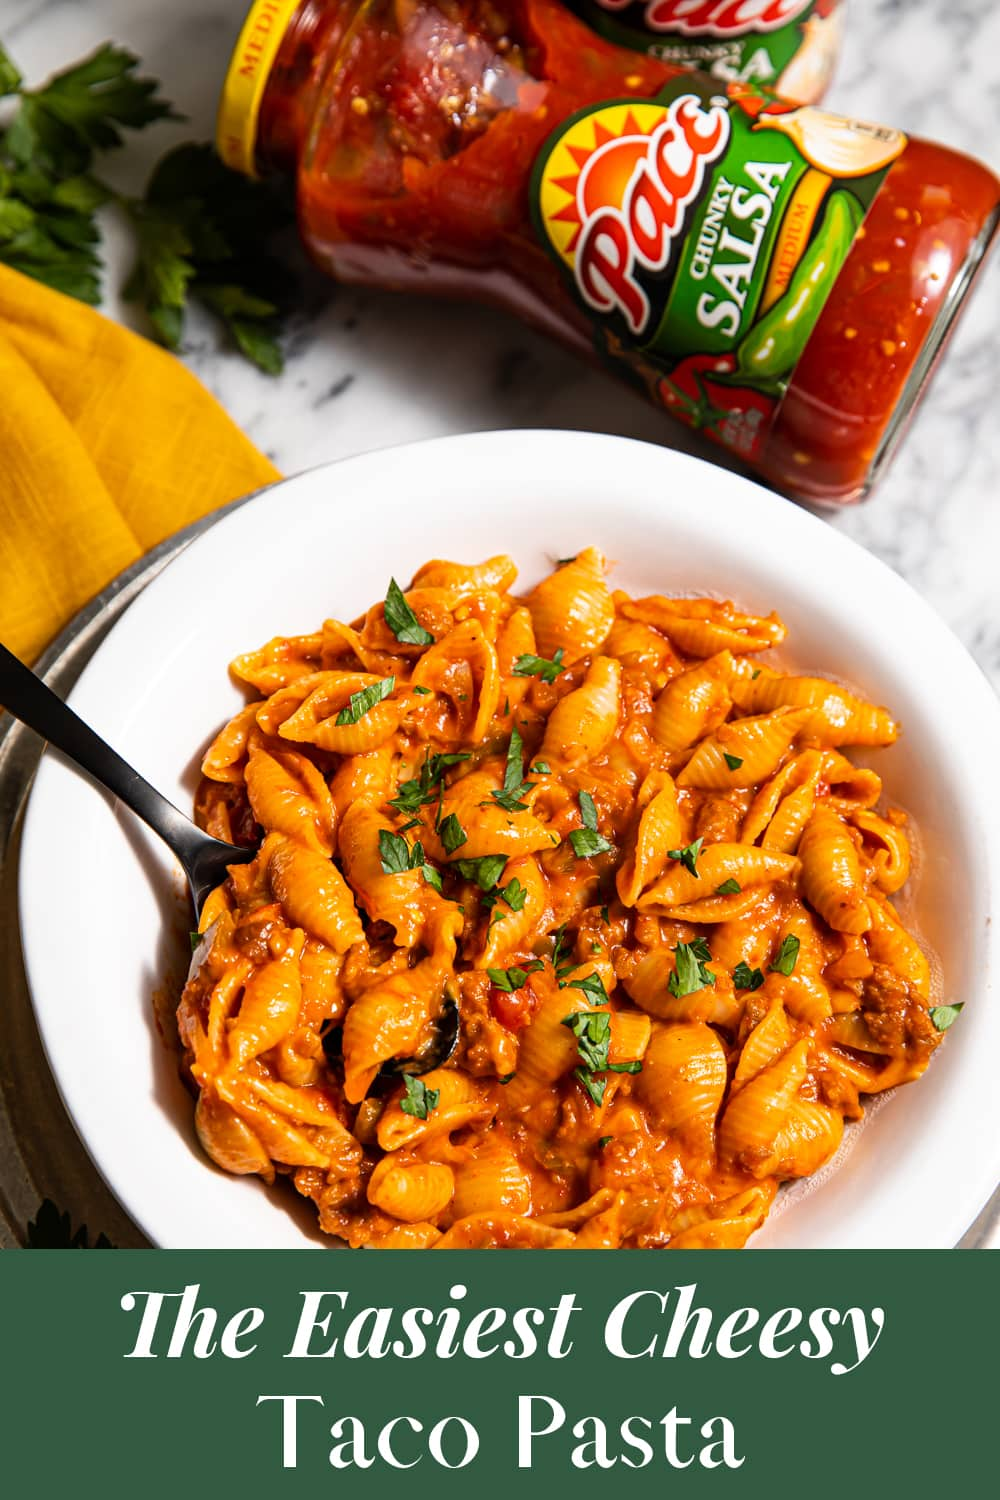 Overhead view of vegan pasta in a bowl next to a jar of salsa.